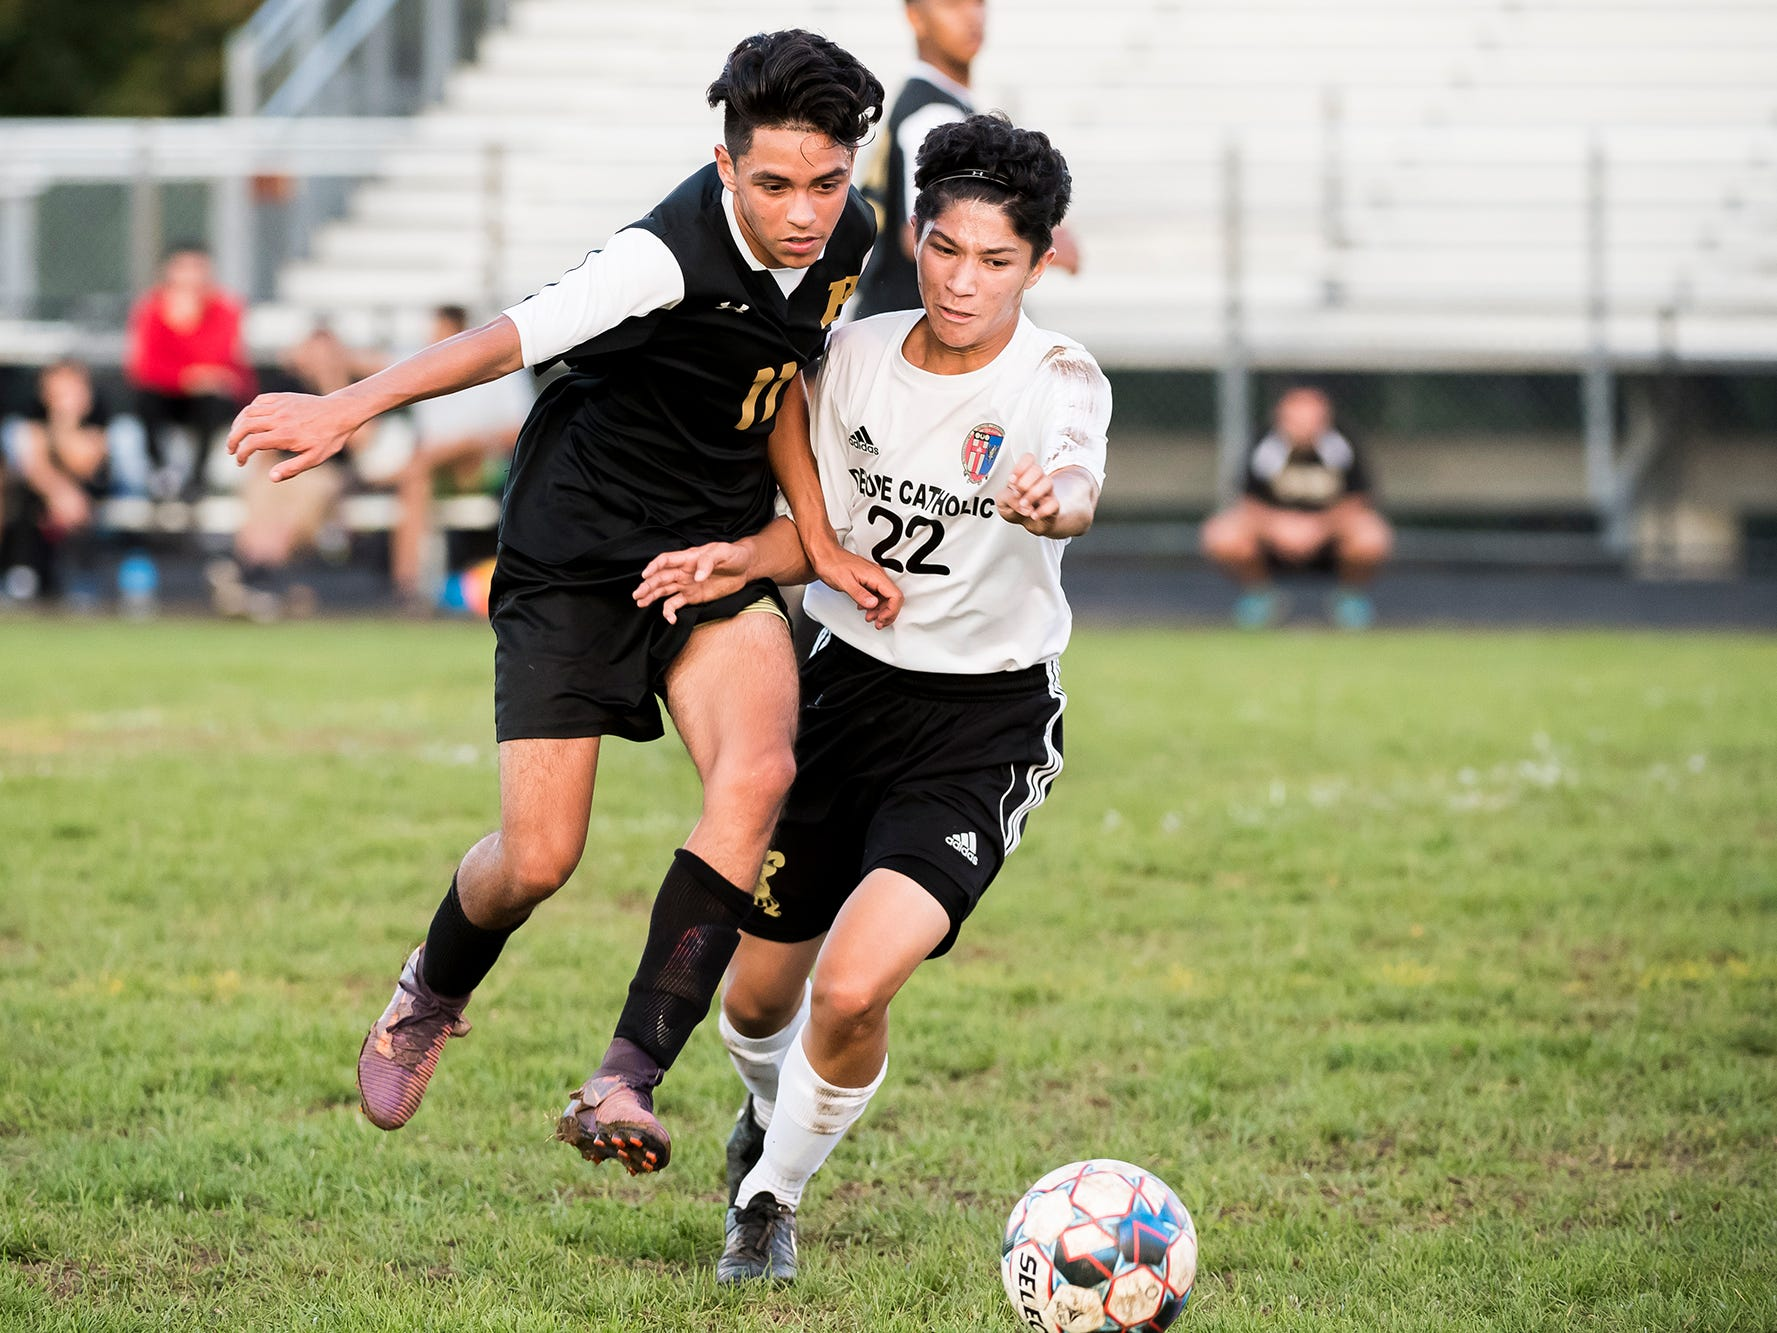 Biglerville's Christian Doreteo and Delone Catholic's Patrick O'Donnell (22) vie for the ball during a game on Wednesday, October 3, 2018. The Canners won 3-0.